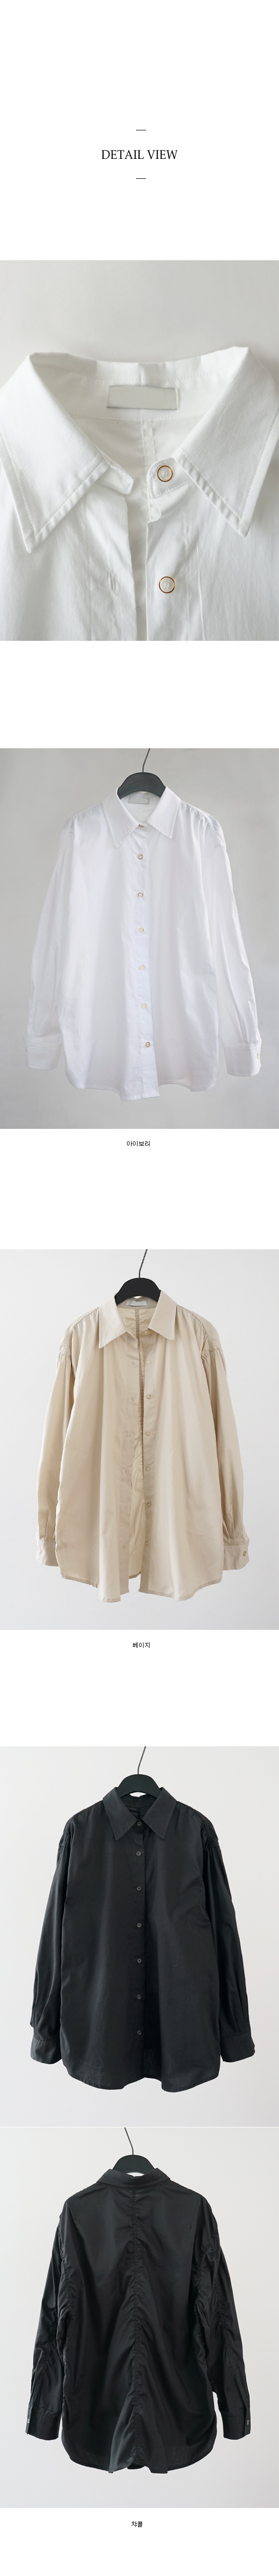 gather line boxy shirt (3colors)